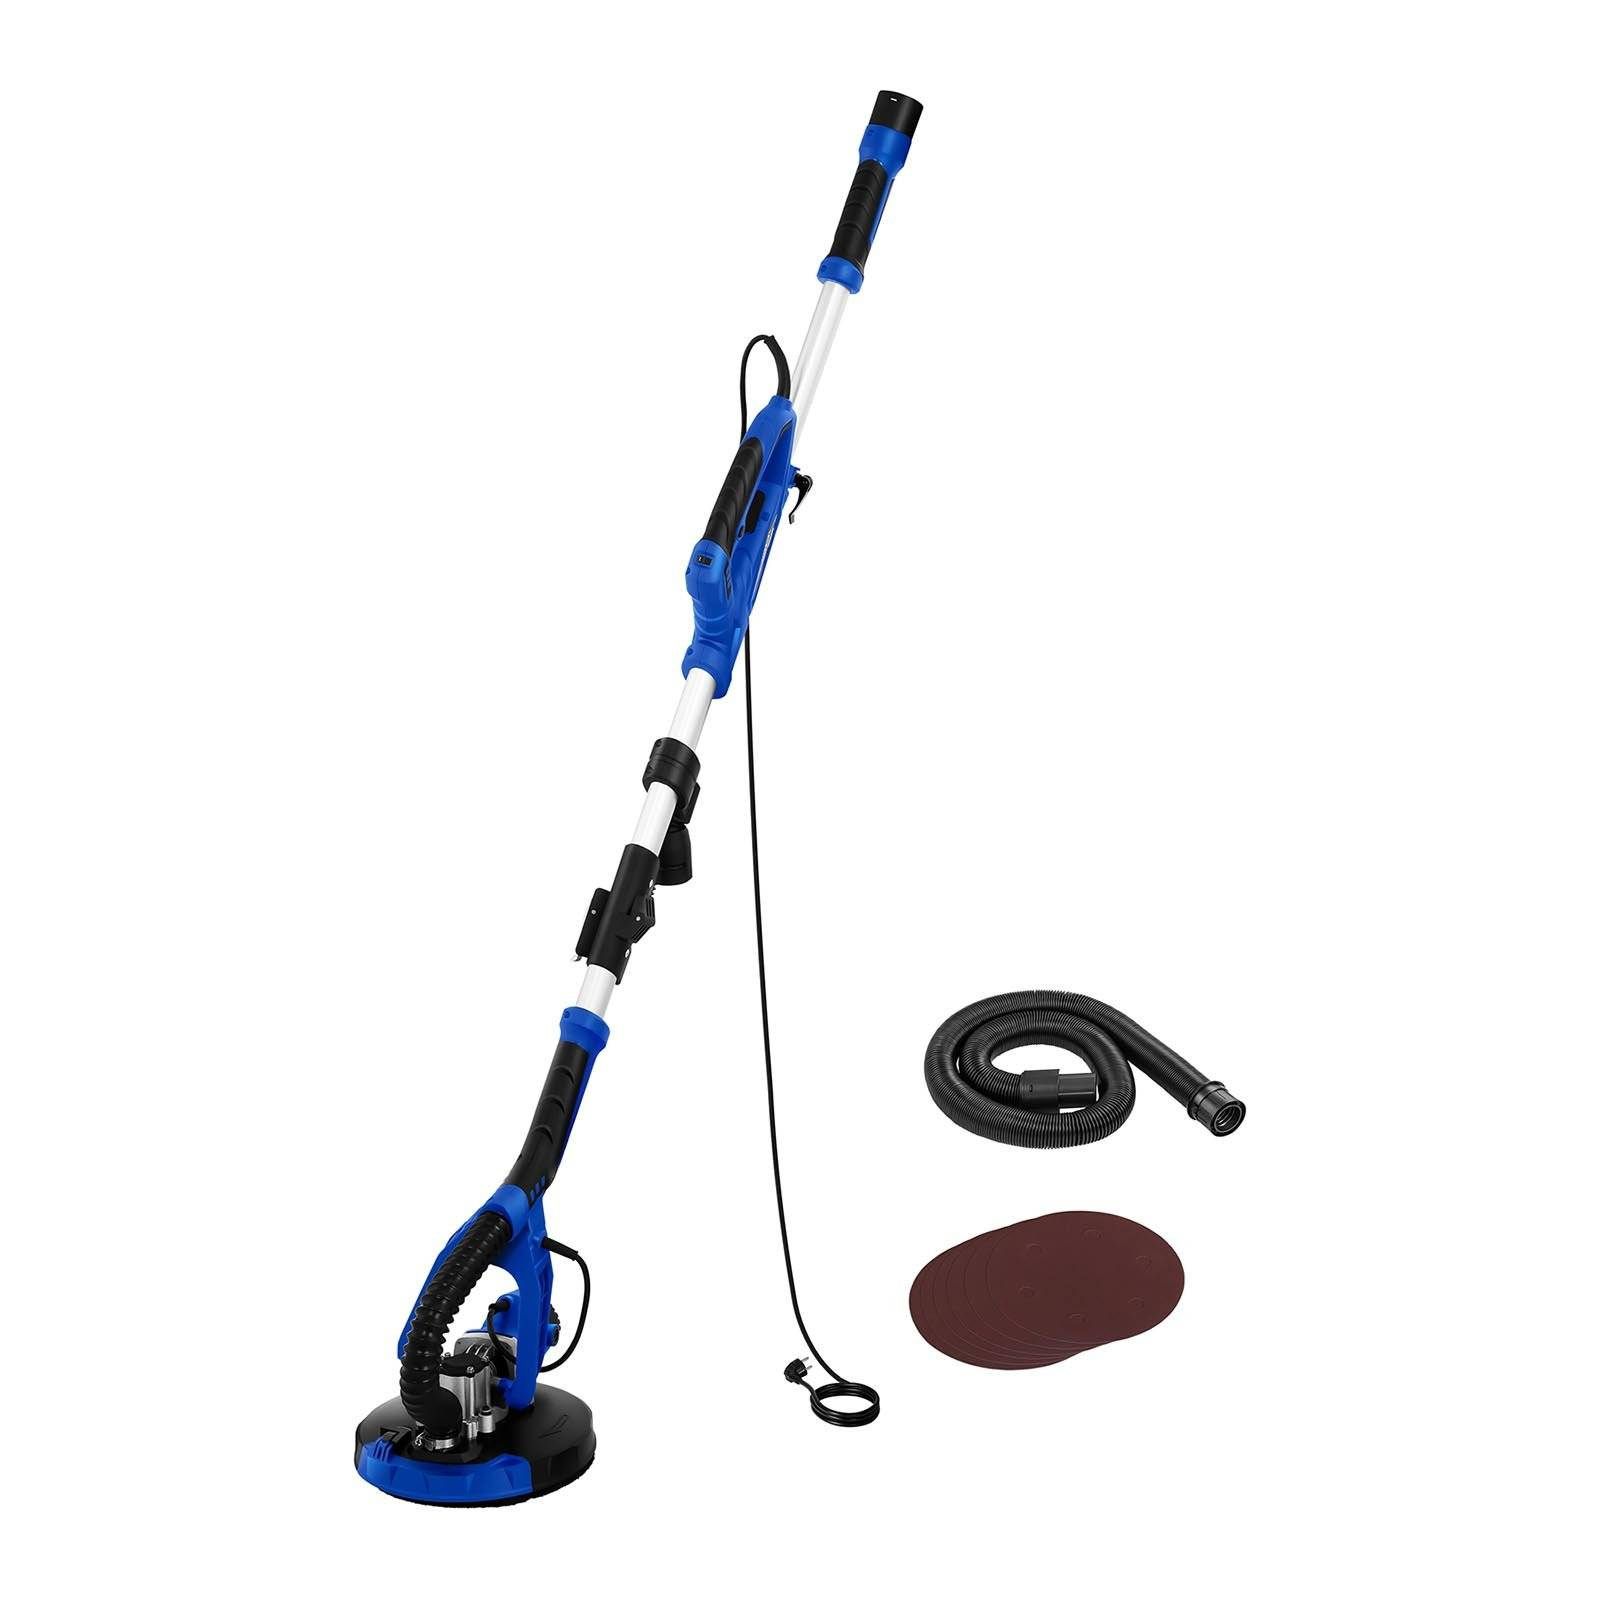 MSW Wall Sanding Machine - 750 W - with LED